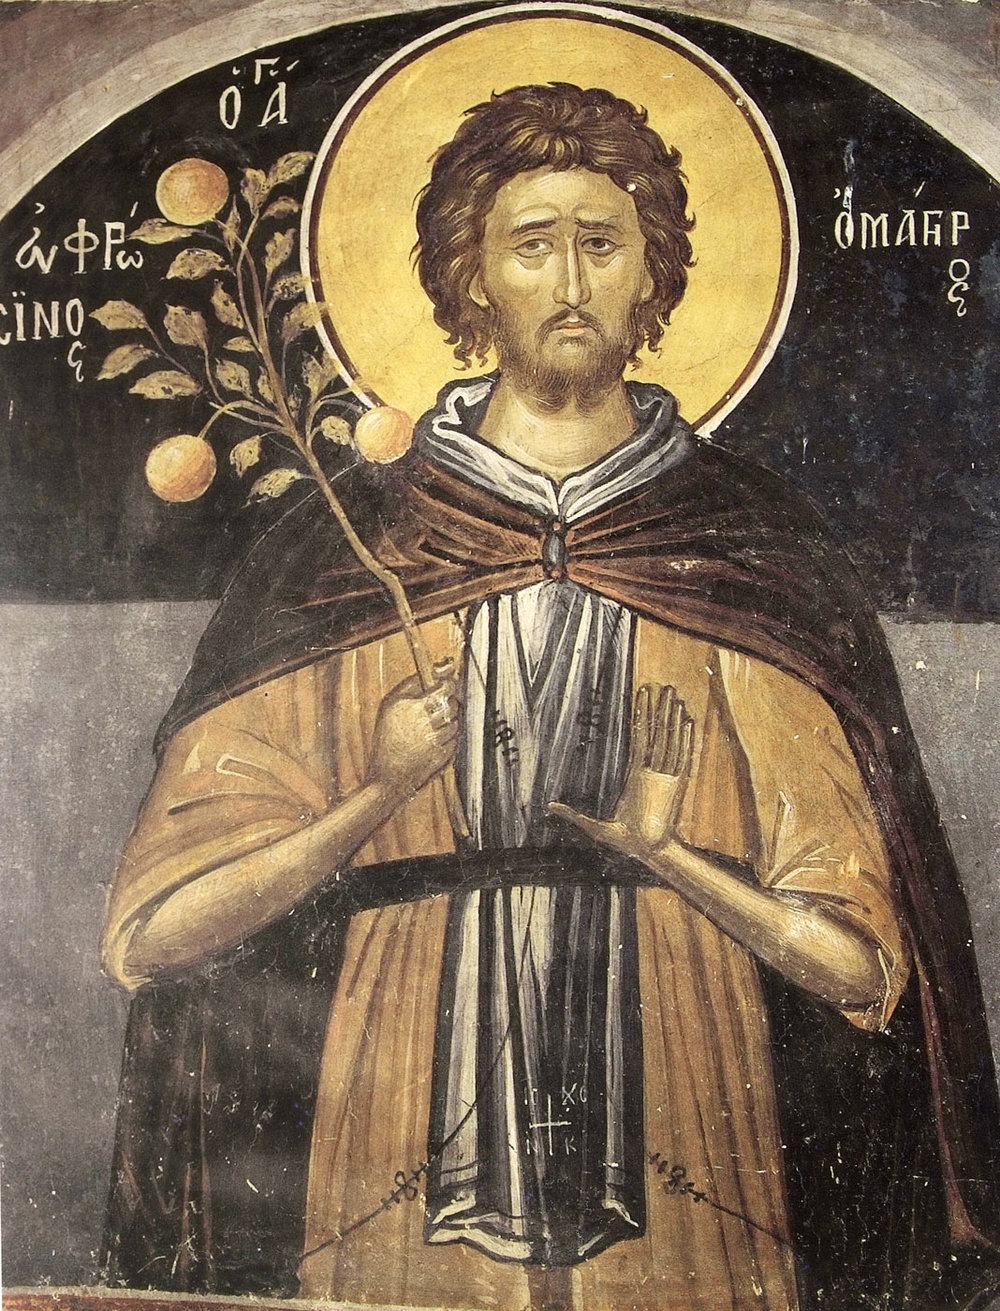 Although no official image of St. Ethbin can be found, some say this could be him as the subject above appears to be in prayerful contemplation as to what to do with this branch of fruit.